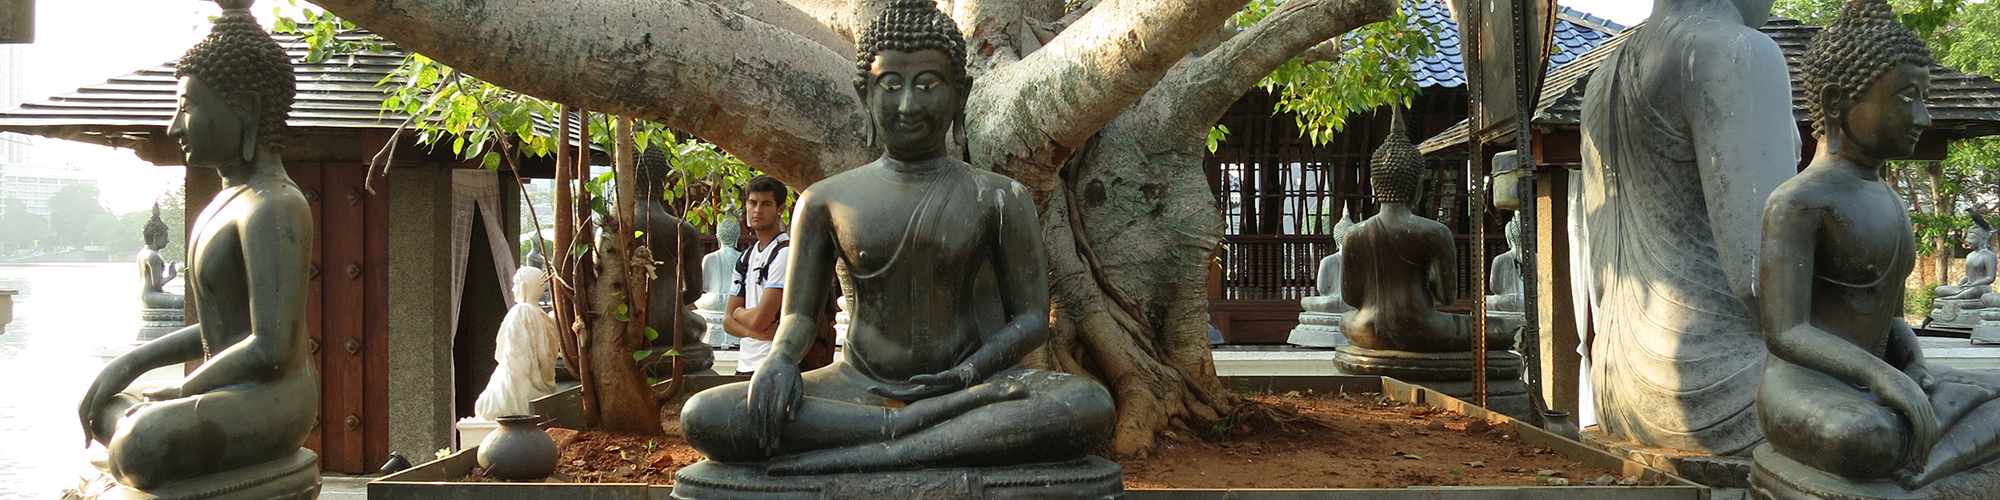 the-cultural-triangle-sri-lanka